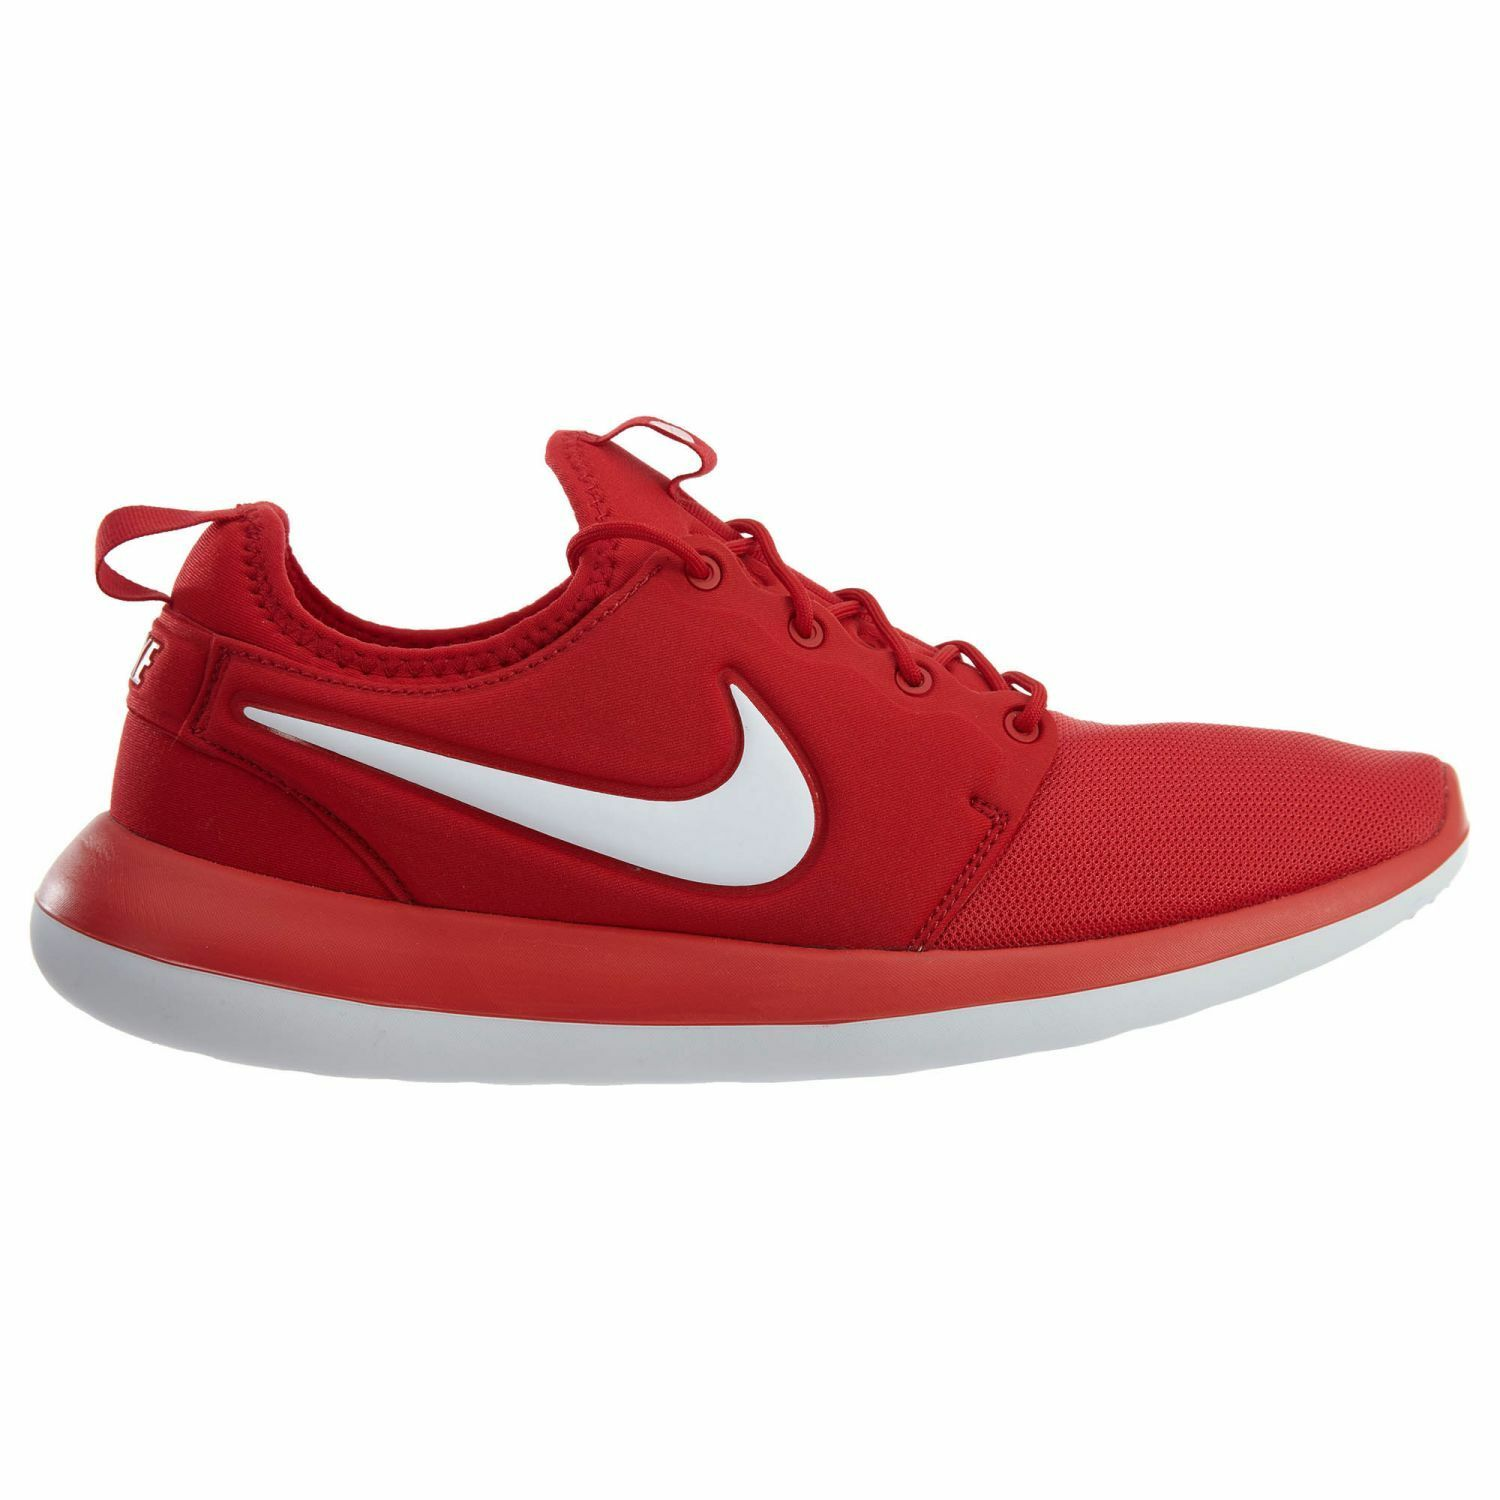 Nike Roshe Two Mens 844656-601 University Red Textile Running Shoes Size 13